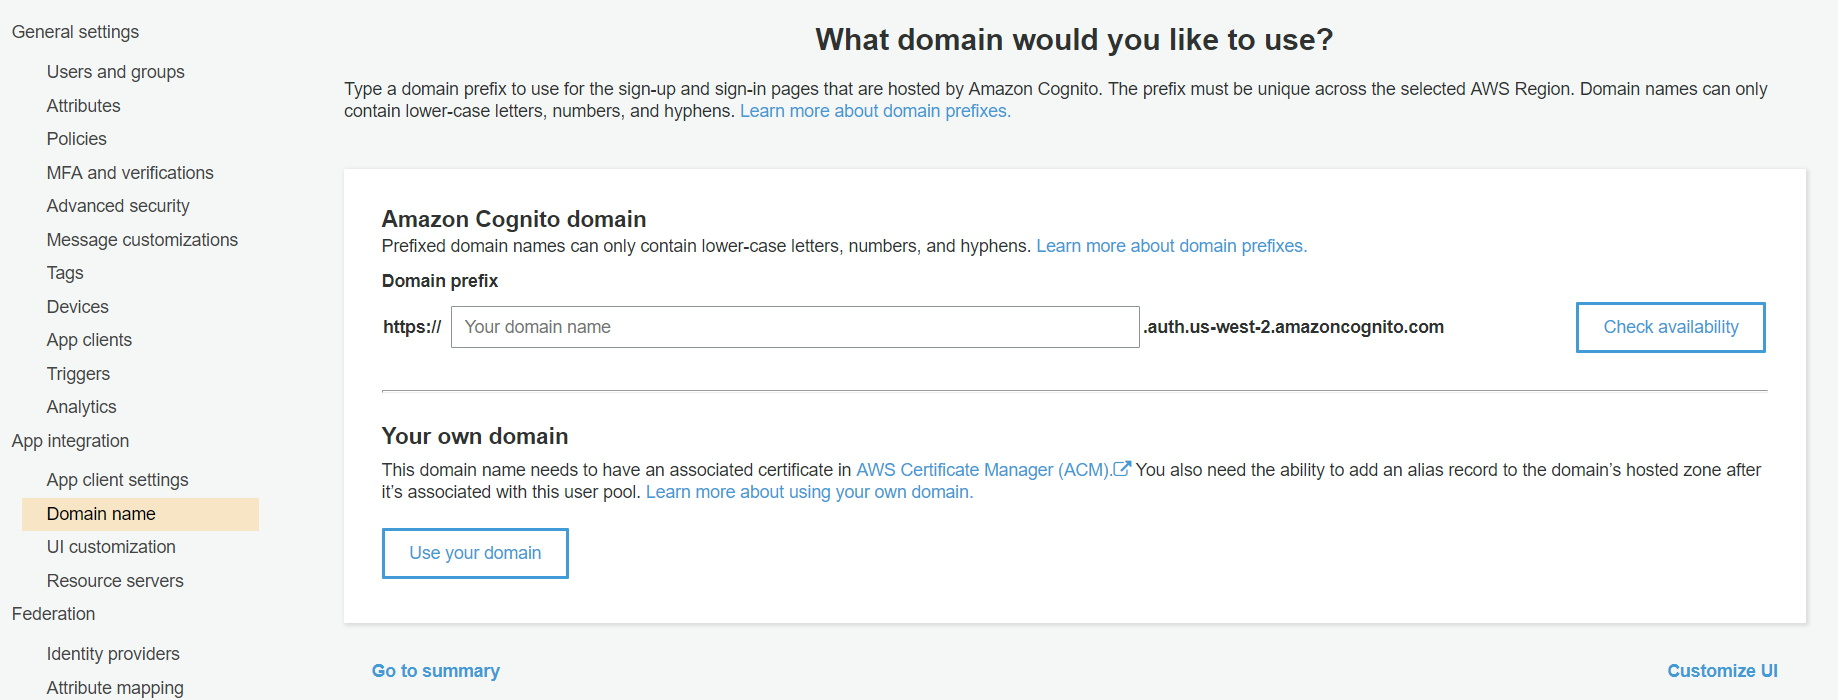 OAuth/OpenID/OIDC Single Sign On (SSO), AWS cognito SSO Login domain name